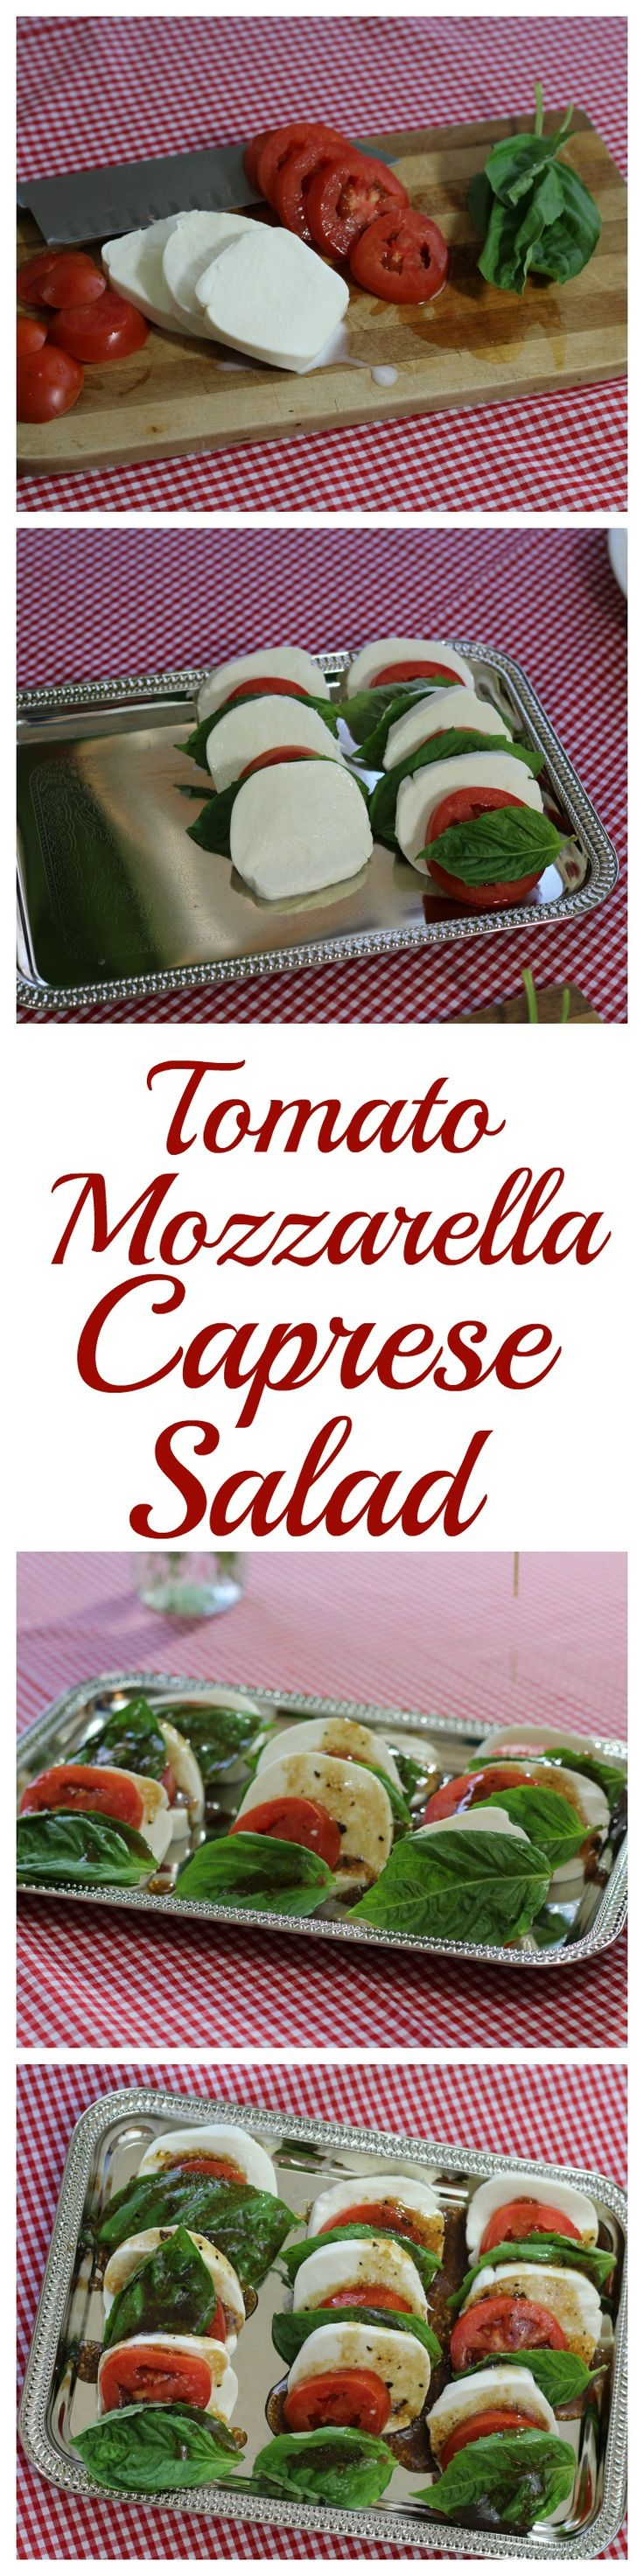 Easy, simple, and delicious tomato mozzarella caprese salad is the perfect addition to any Italian dinner menu. Grab our recipe and enjoy. Set the mood with a few simple touches and use our trick for turning pasta into table decor.